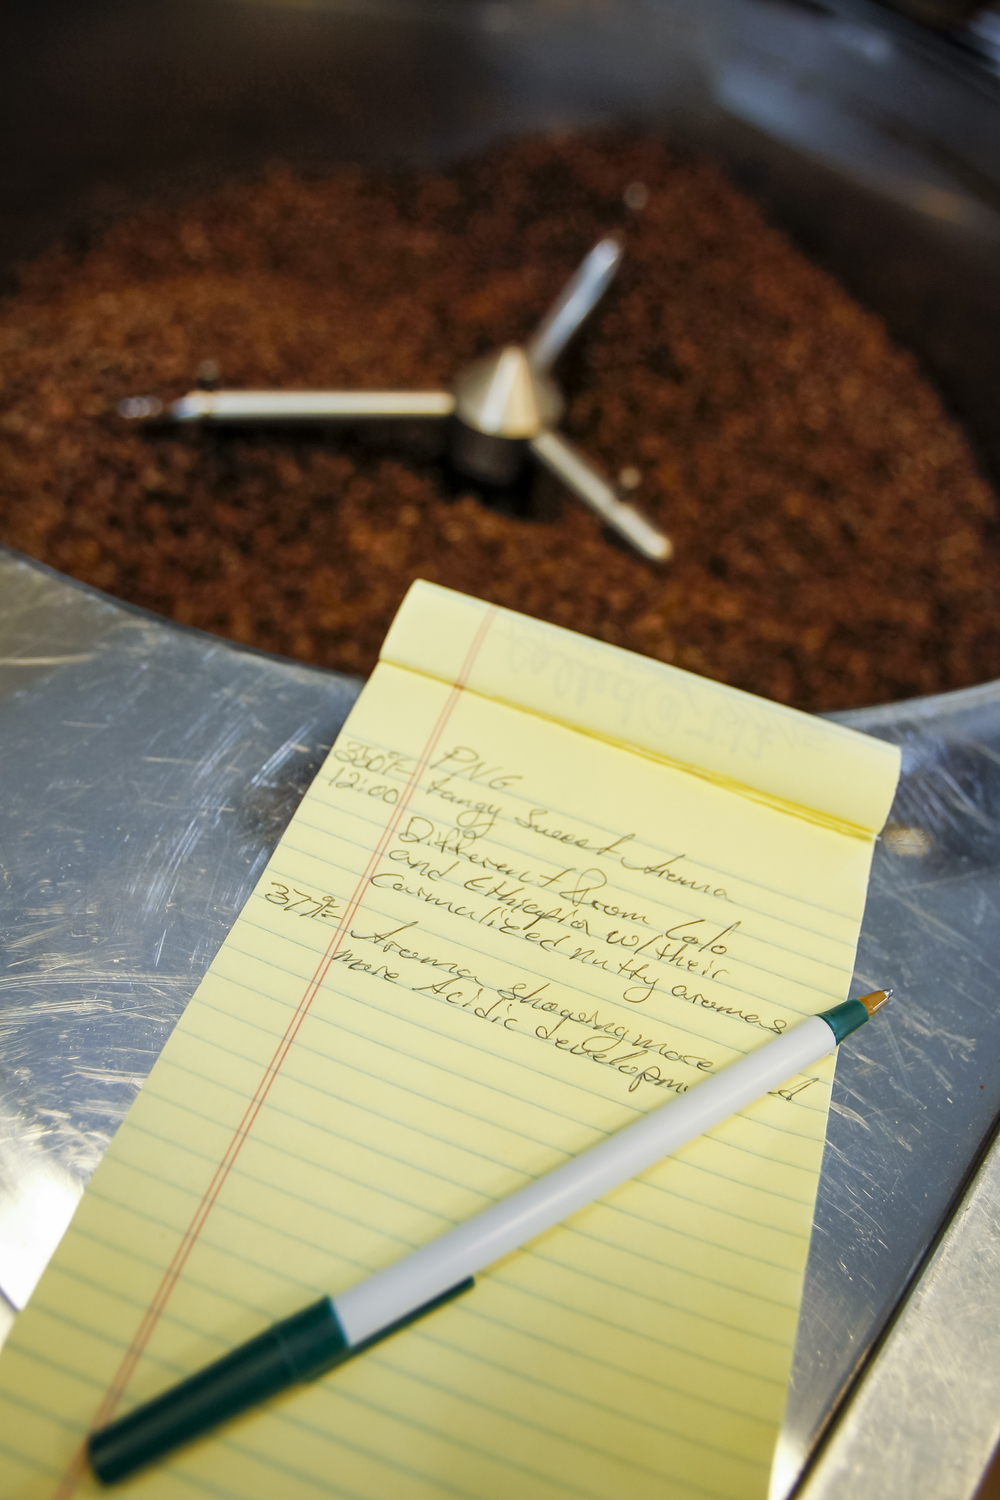 Alan, a customer, has helped us write a custom program to record each roast and the resulting characteristics.